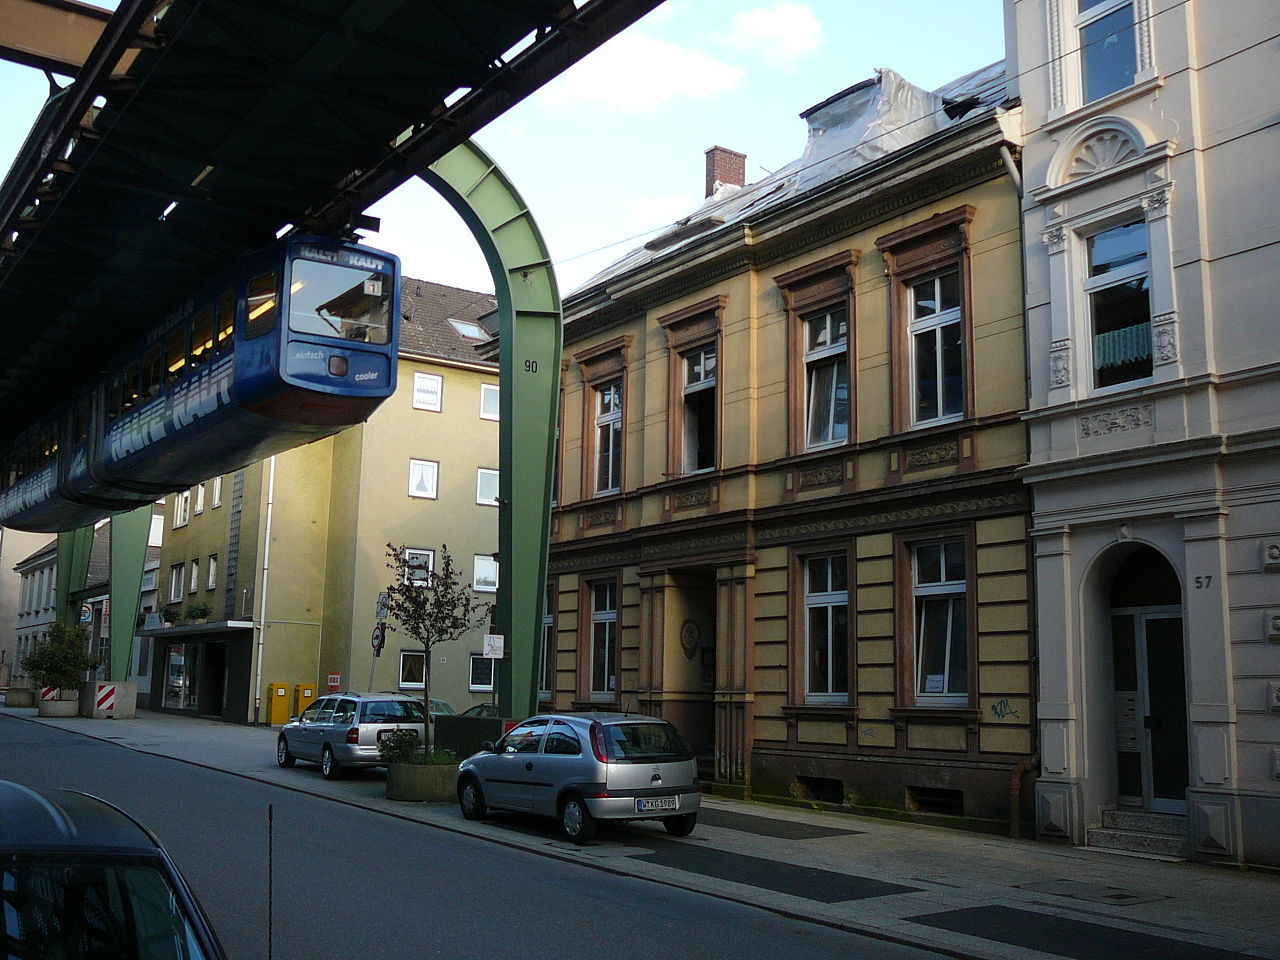 DateiWuppertal Sonnborner Str 0031jpg – Wikipedia